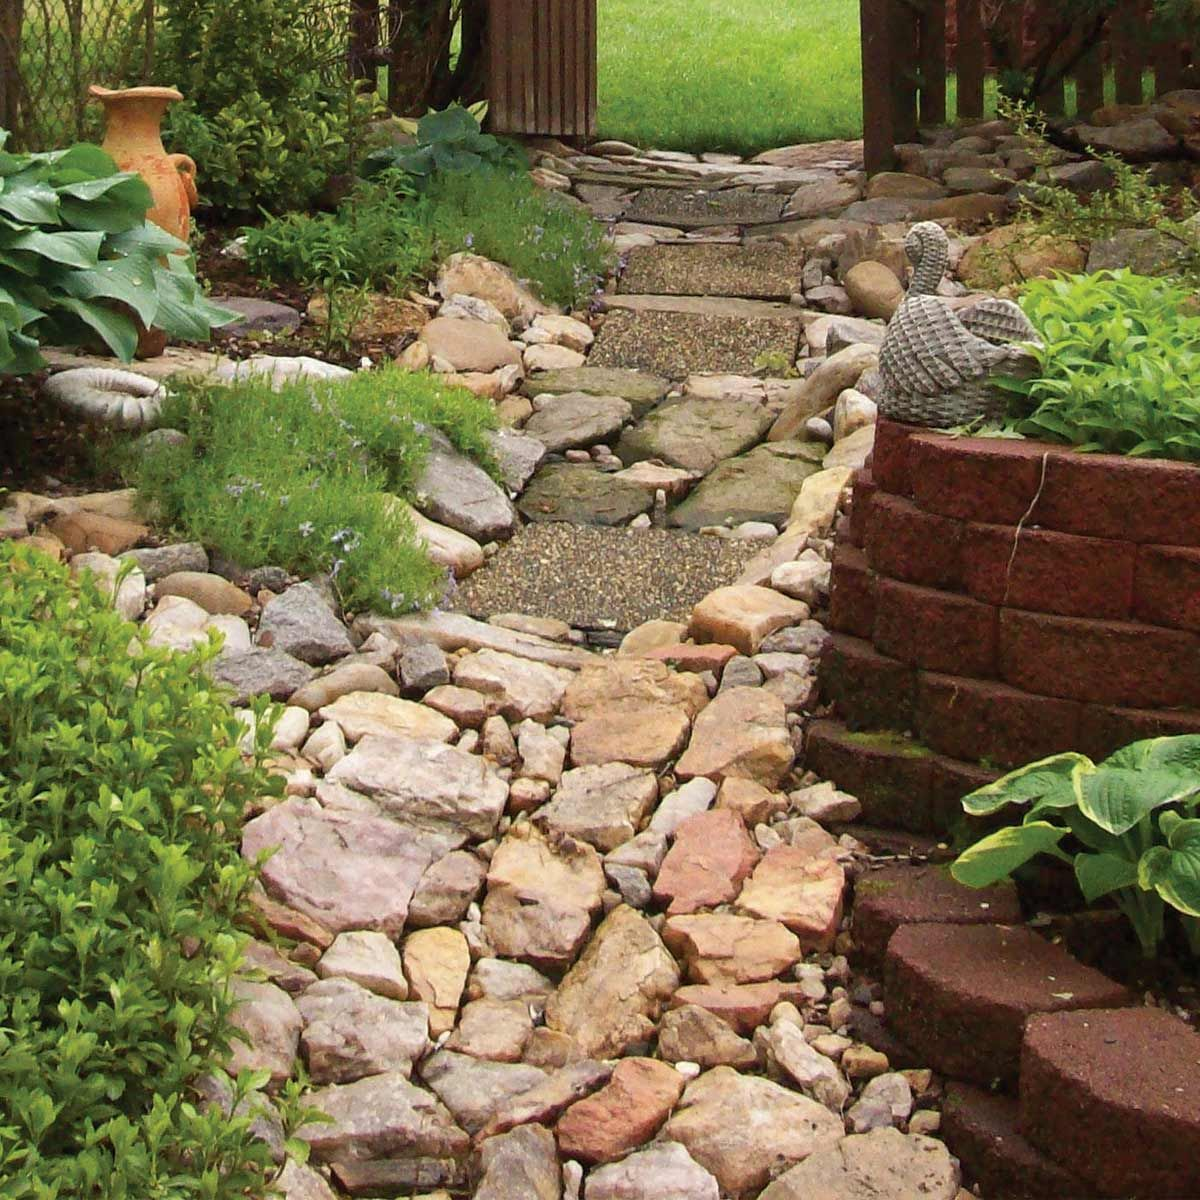 6 Common Lawn Problems and How to Fix Them | Backyard ...